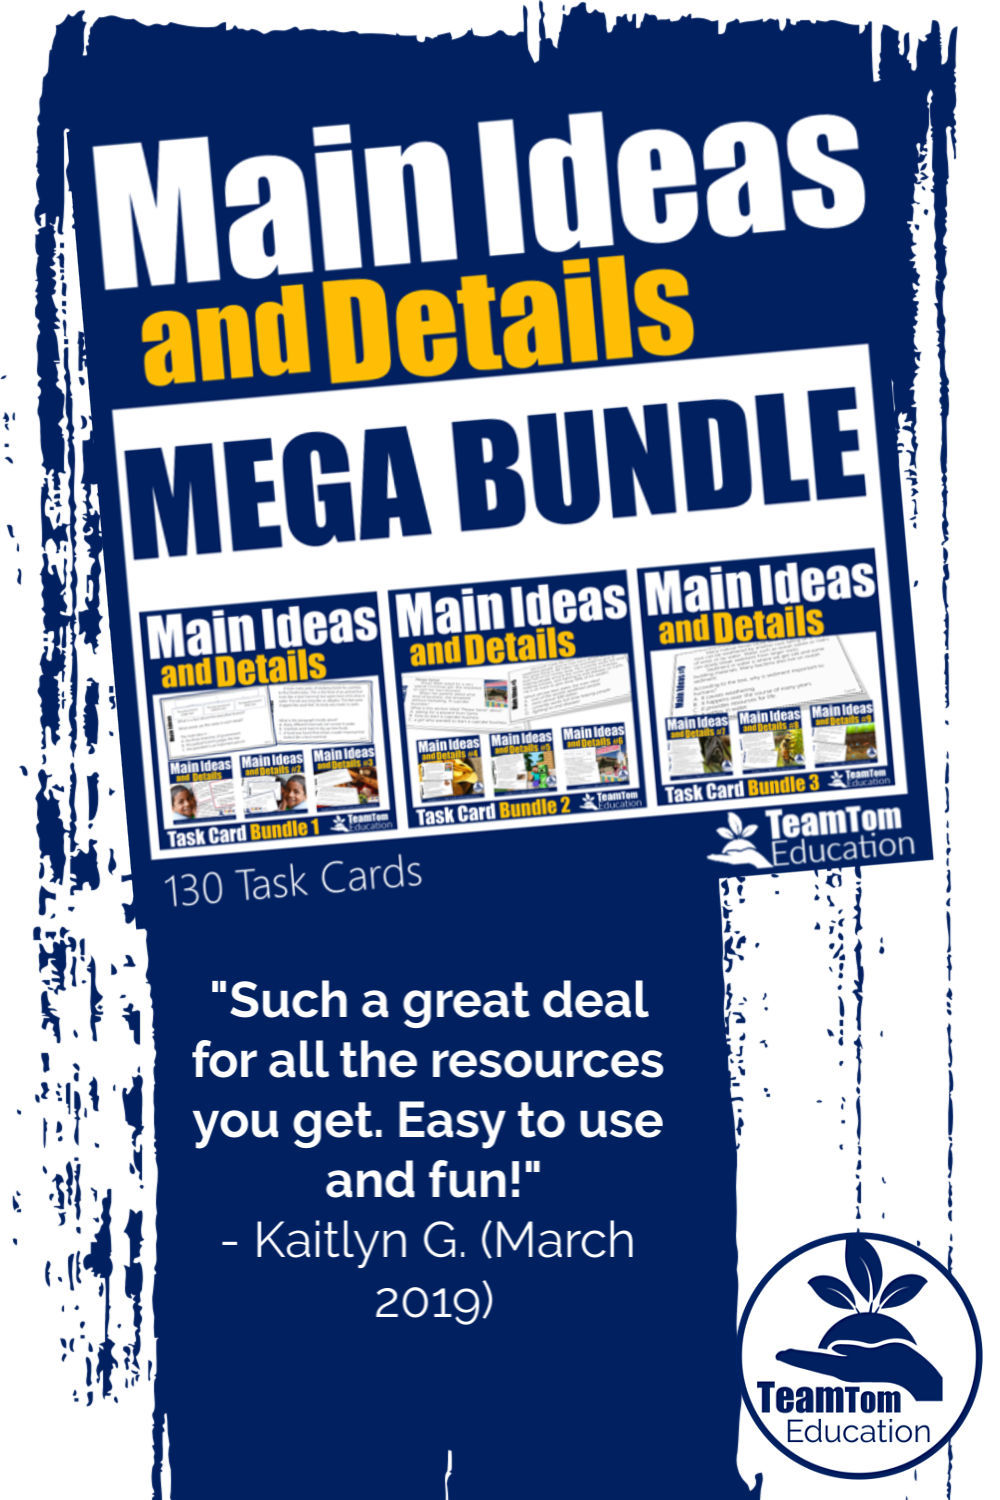 Main Idea Task Cards Mega Bundle - TeamTom Education. These task cards address all genres and are perfect for TEKS, CCSS, and STAAR aligned lessons teaching central ideas and details.